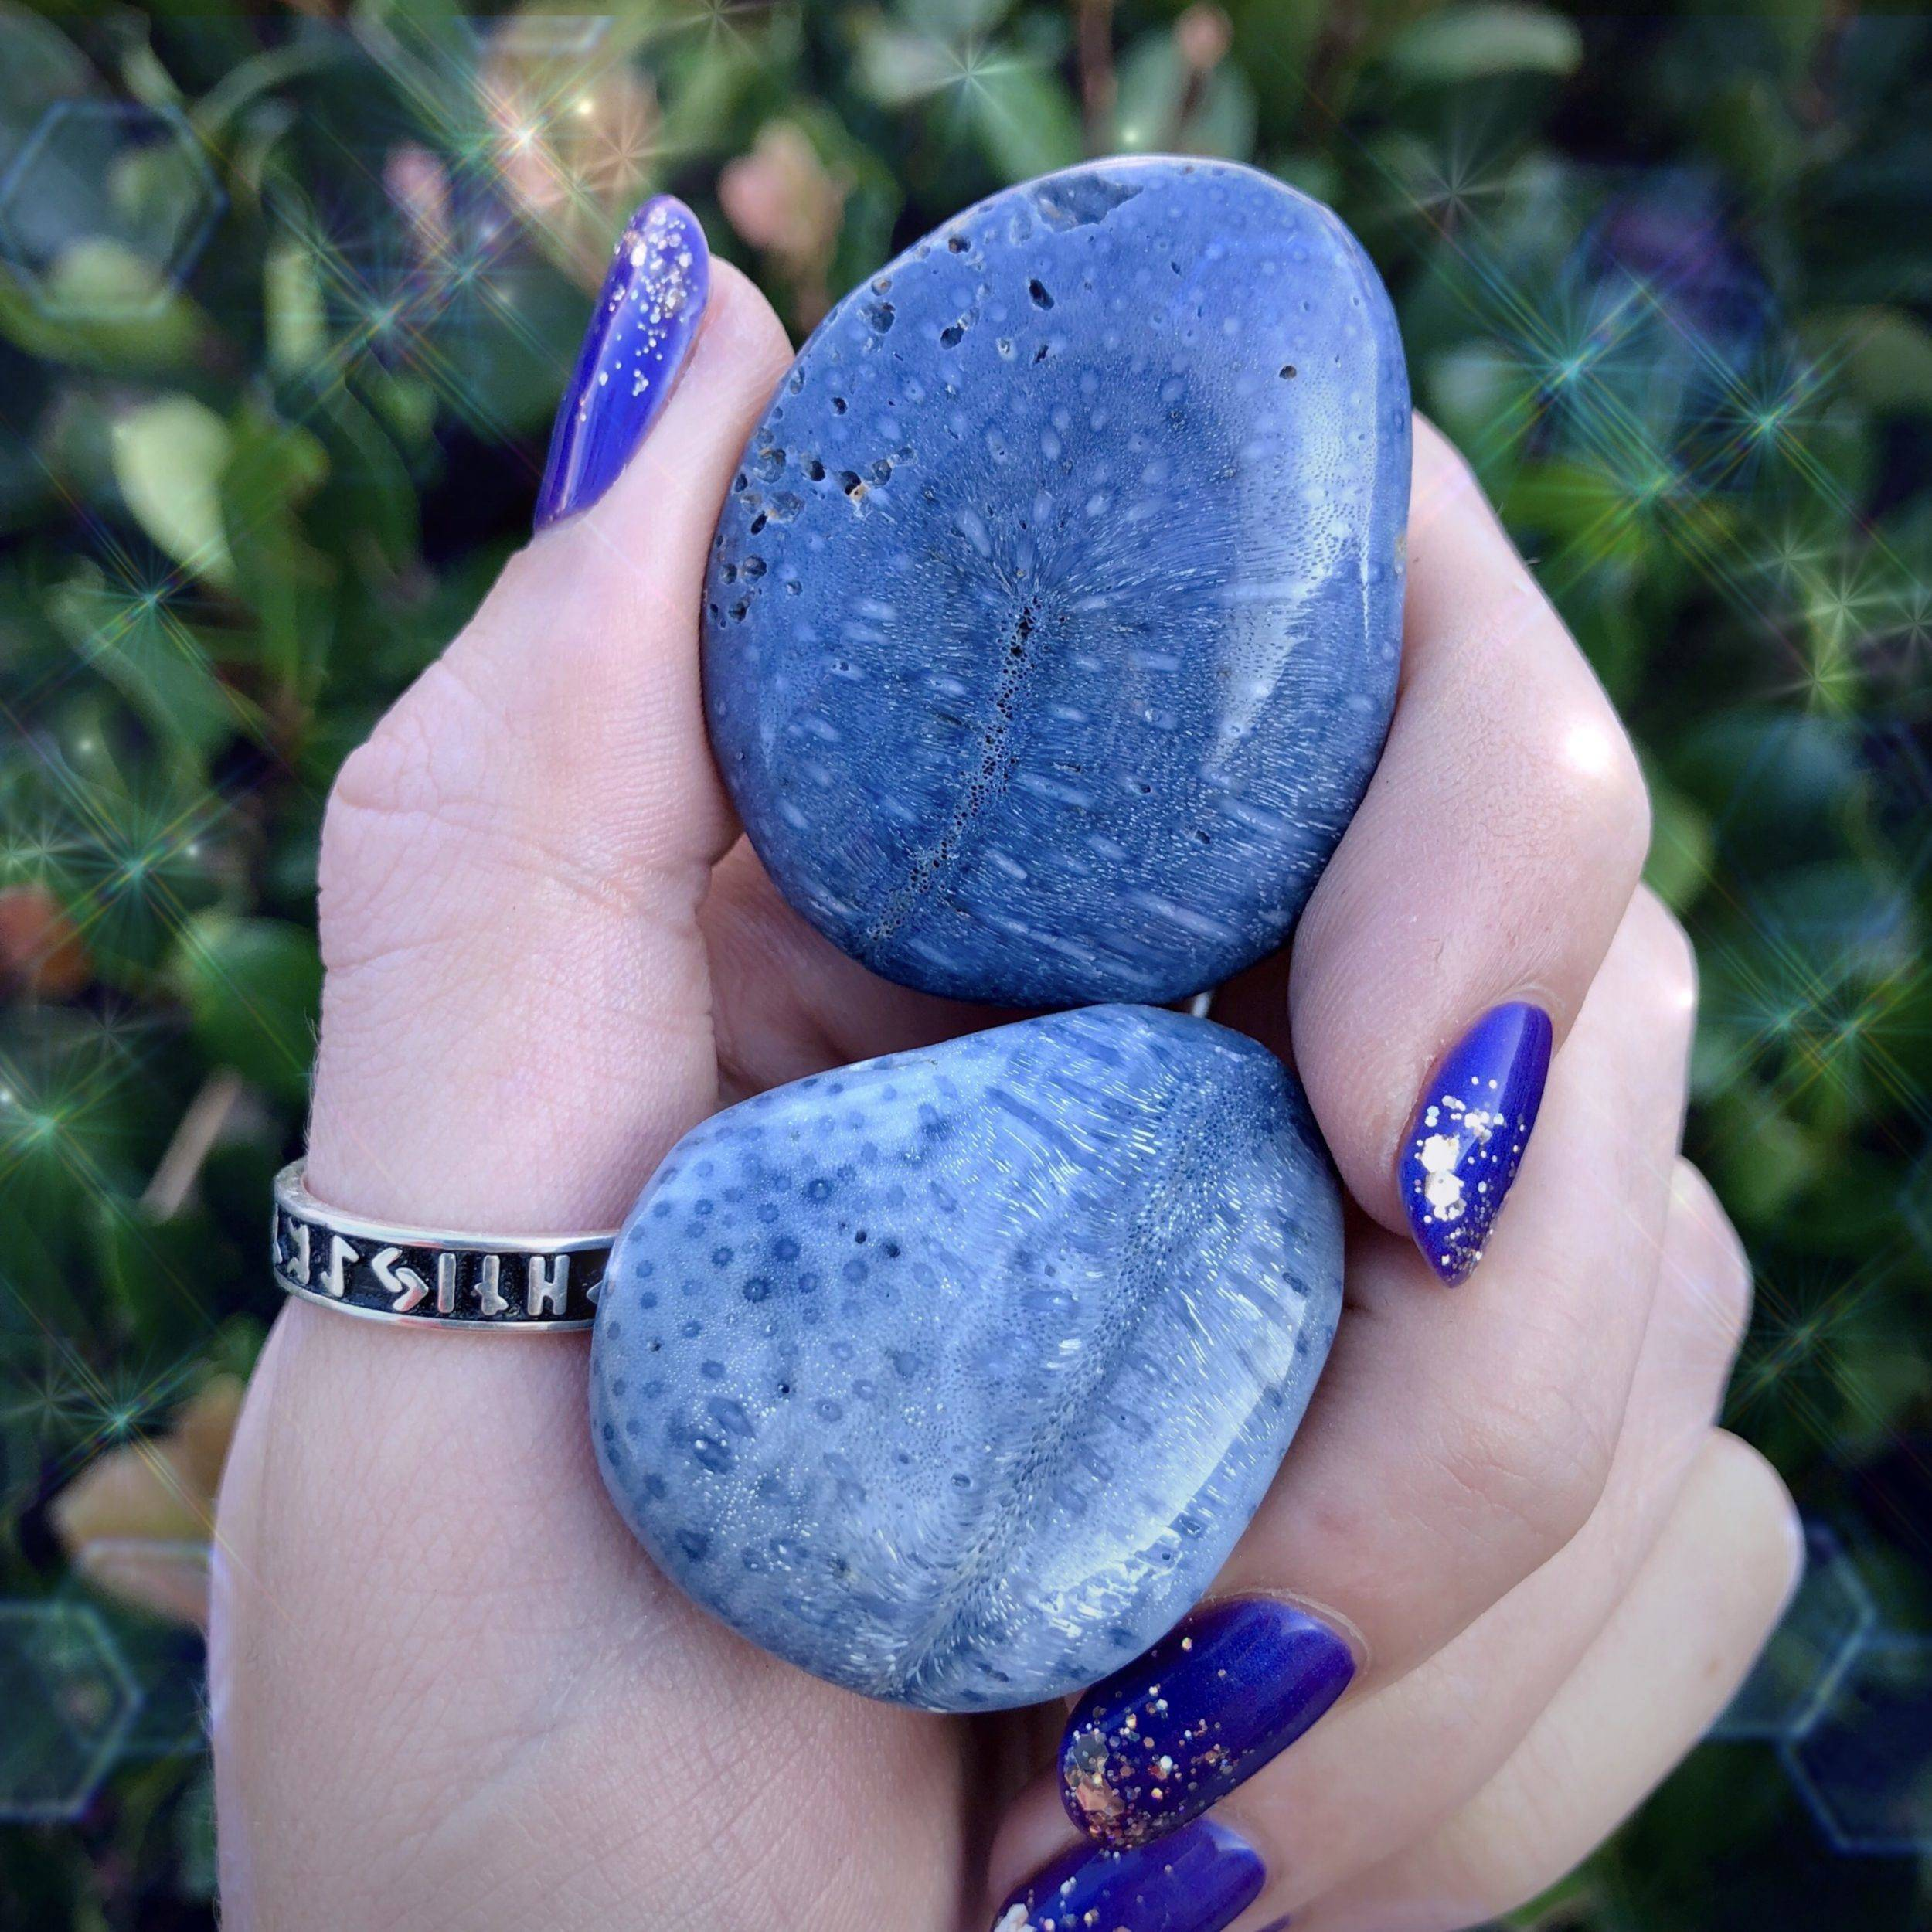 Past_Life_Healing_Palm_Stone_2of3_10_29.